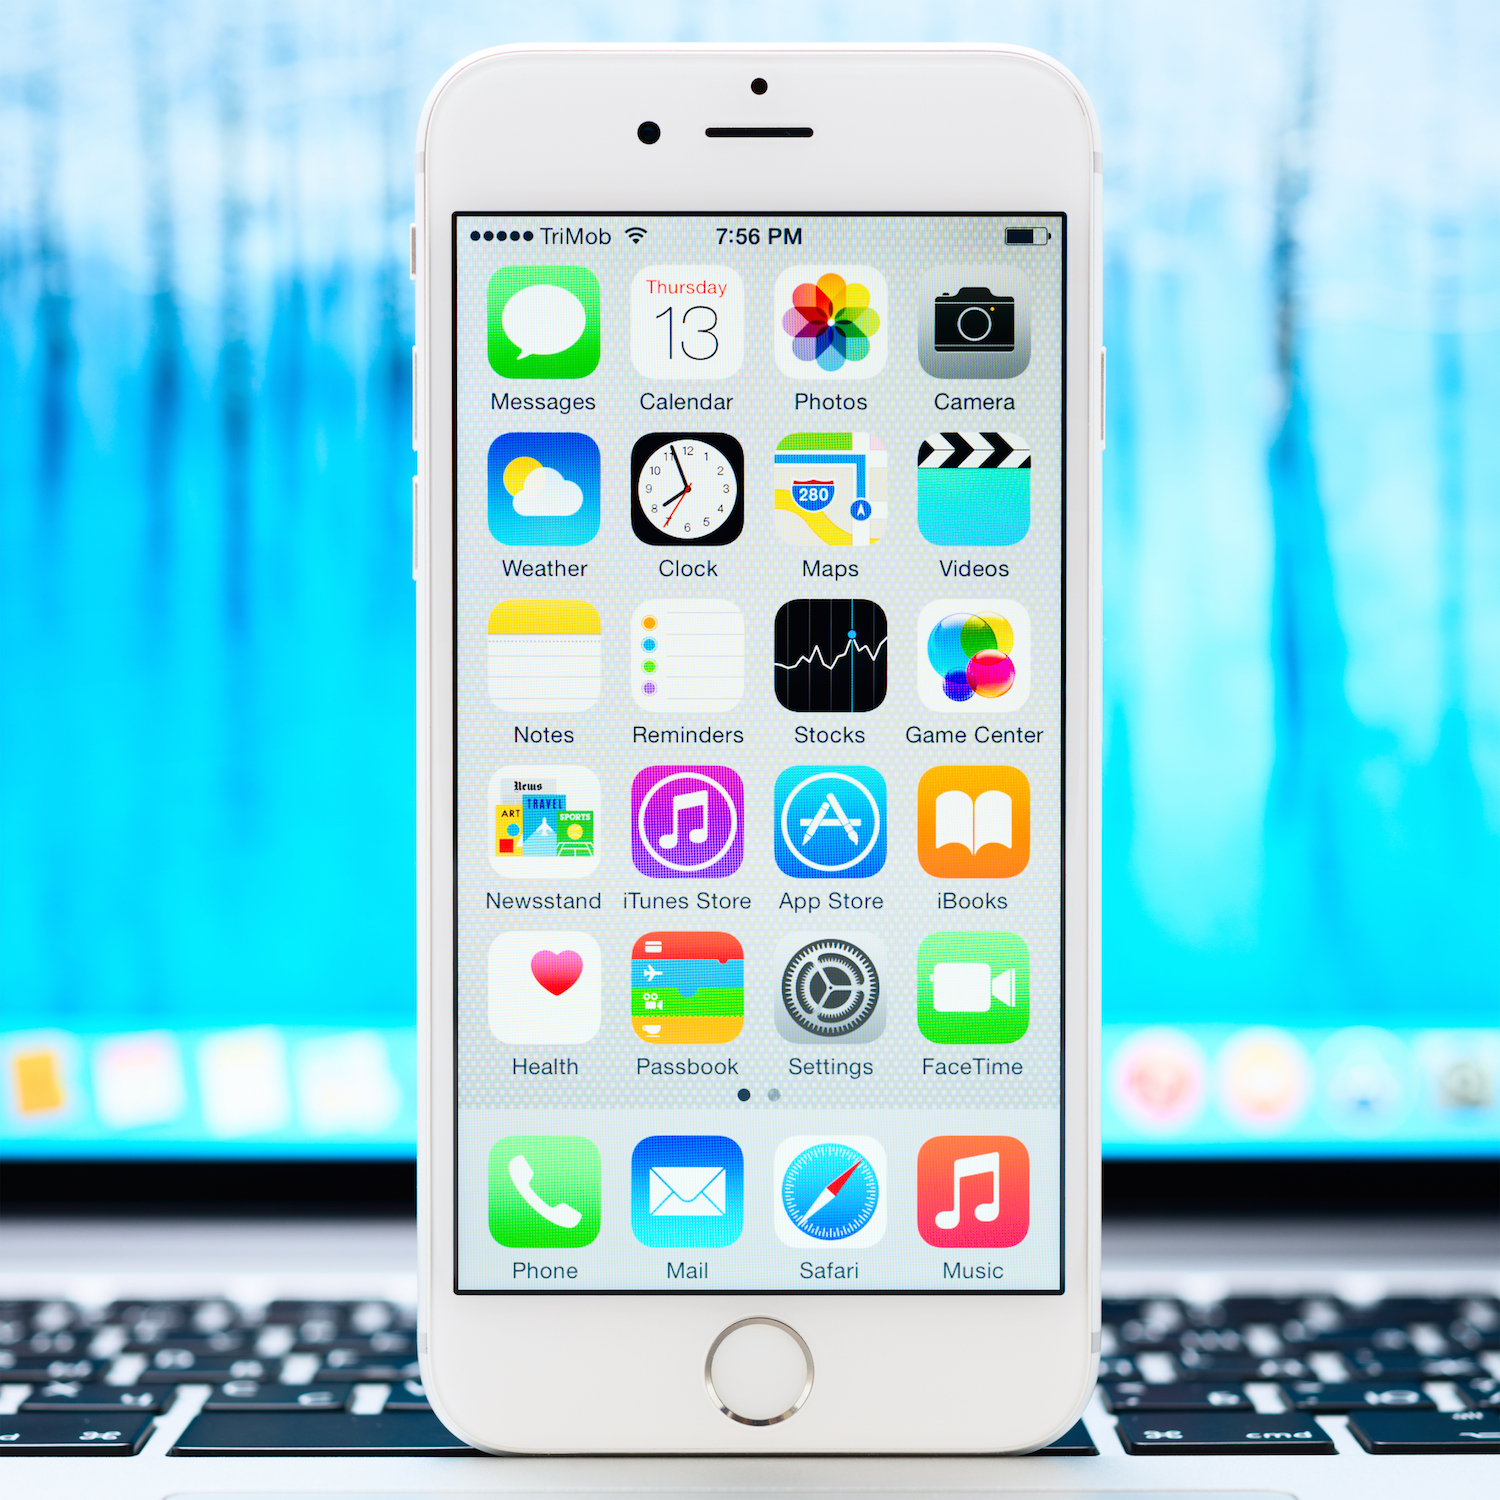 New Ios 8.1 Homescreen On An White Iphone 6 Display